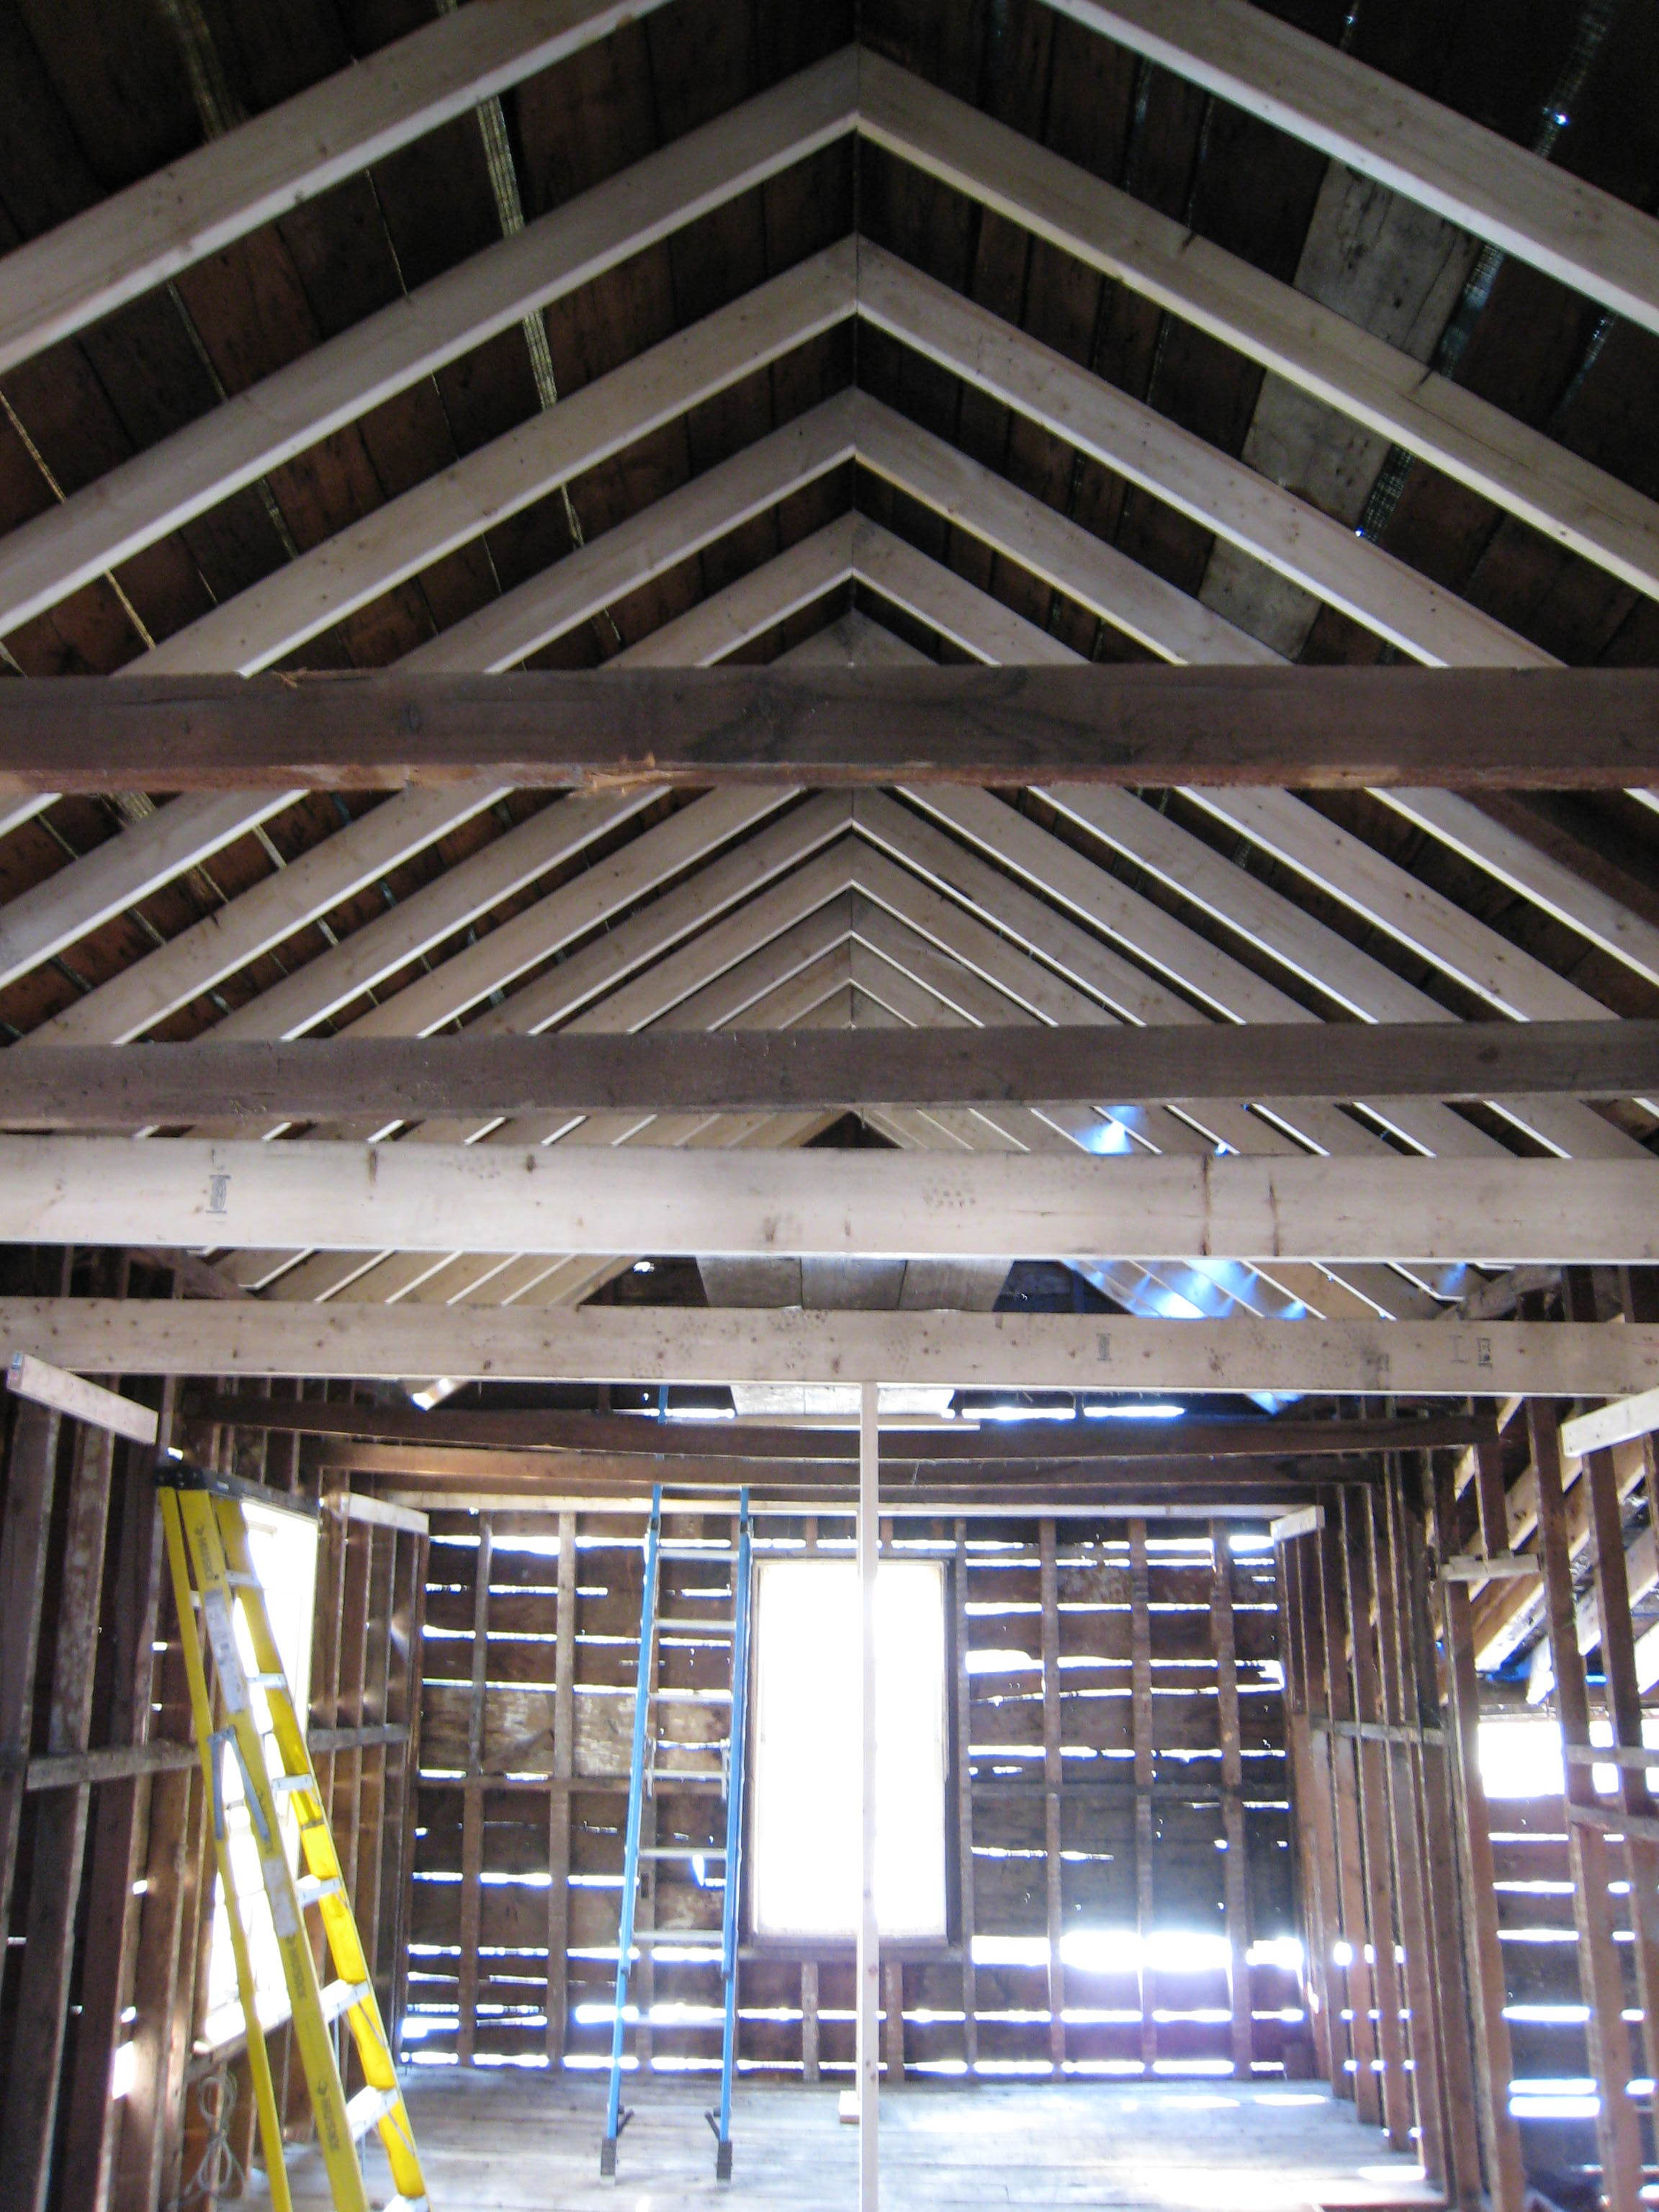 New framing was part of the scope, after the existing was salvaged as much as possible.